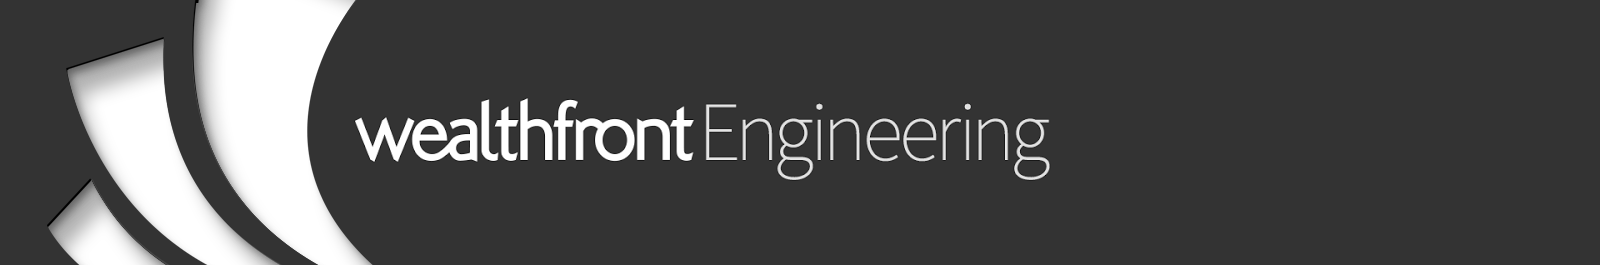 Wealthfront Engineering